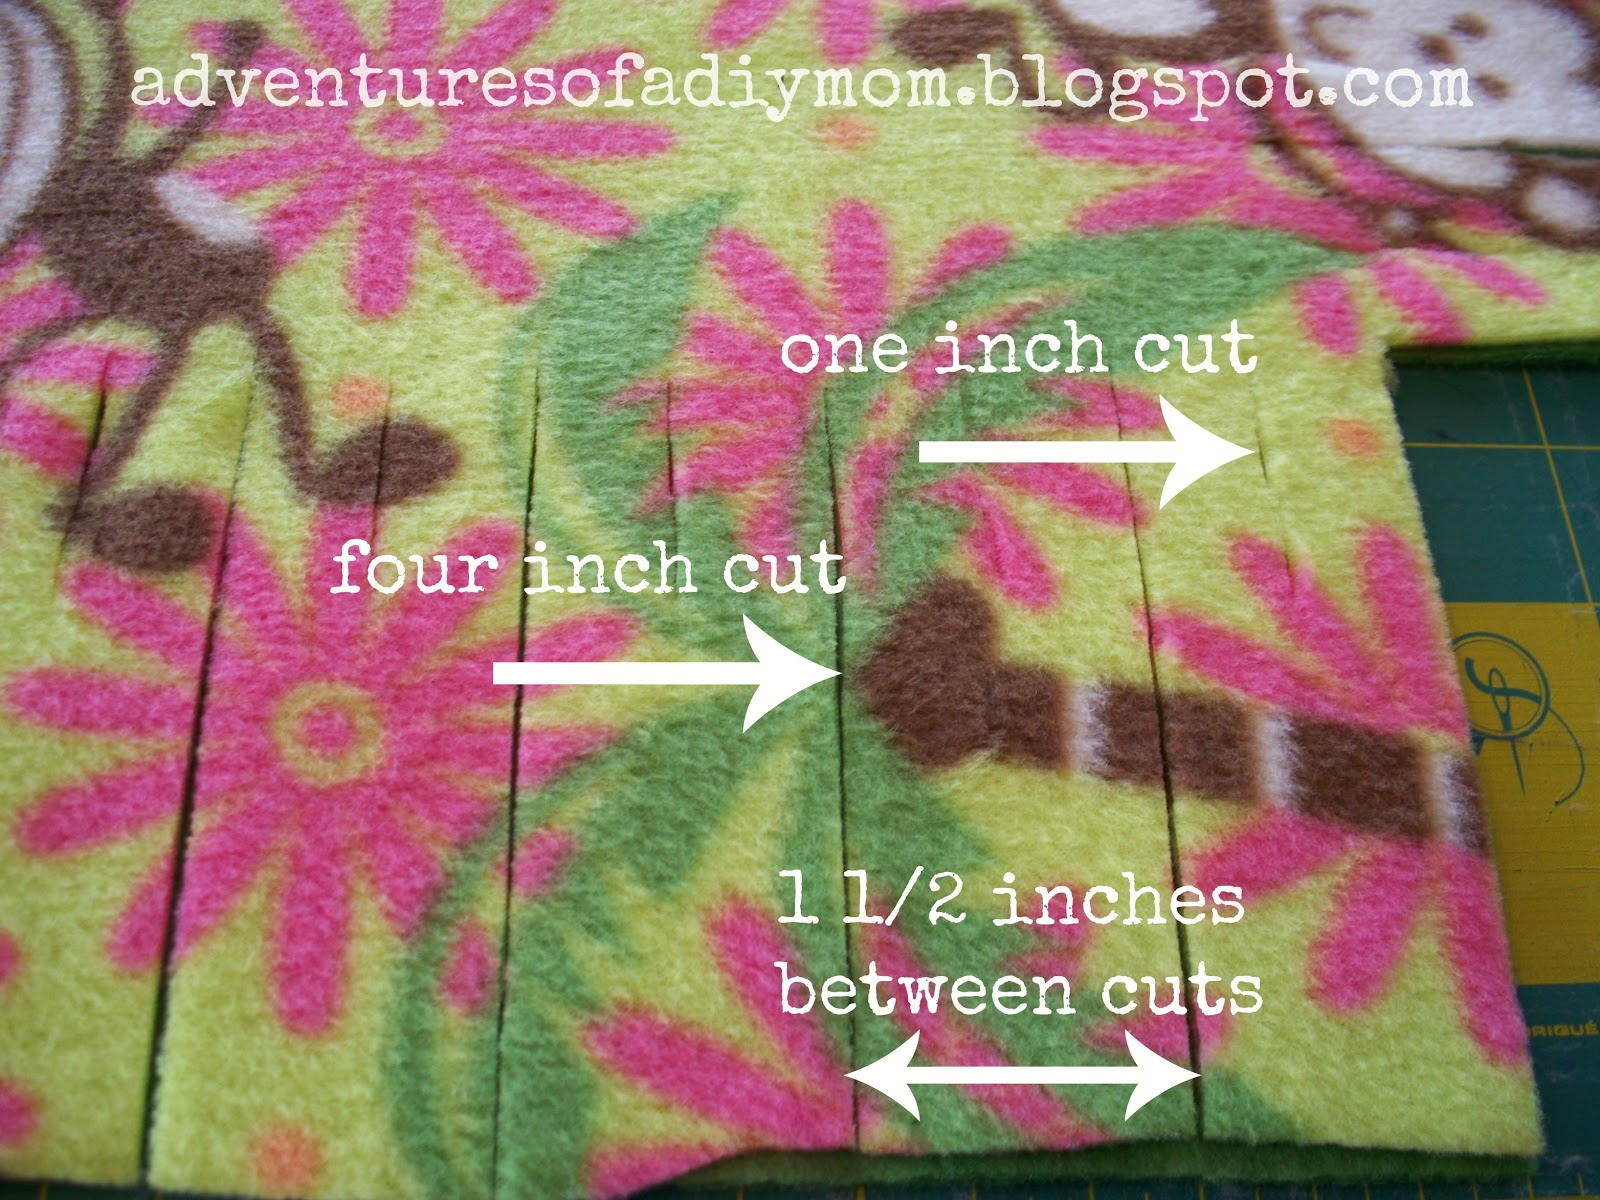 How to Make a No Sew Fleece Blanket Adventures of a DIY Mom : 1005611 from www.adventuresofadiymom.com size 1600 x 1200 jpeg 371kB